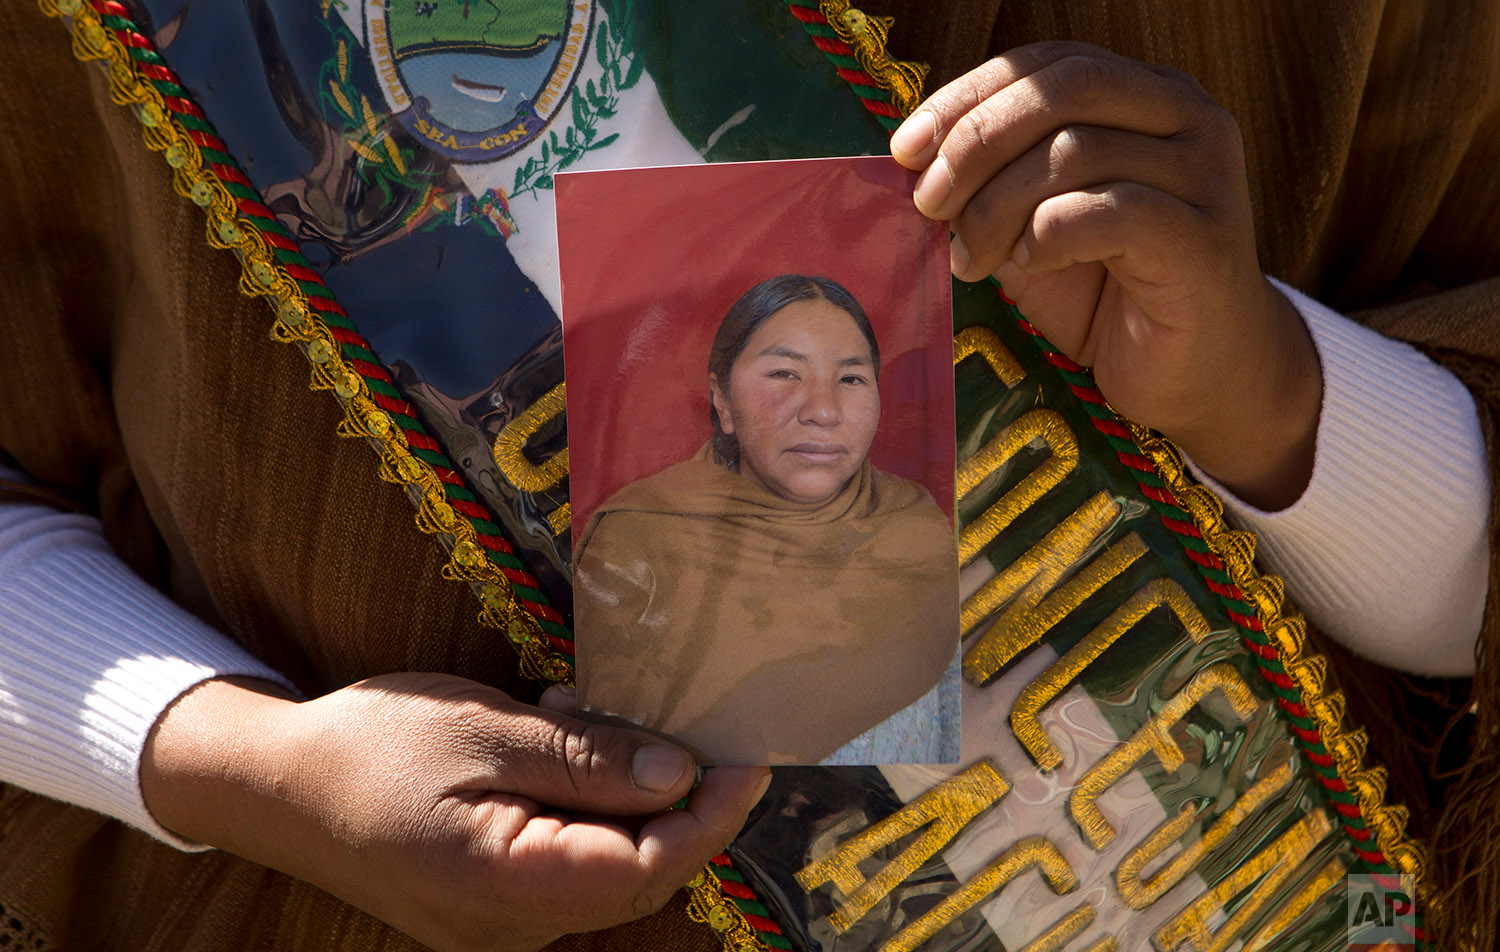 In this June 23, 2018 photo, Councilwoman Mary de la Cruz holds a photo showing the bruise caused by a male colleague who punched her in the face, in Achocalla, Bolivia. (AP Photo/Juan Karita)